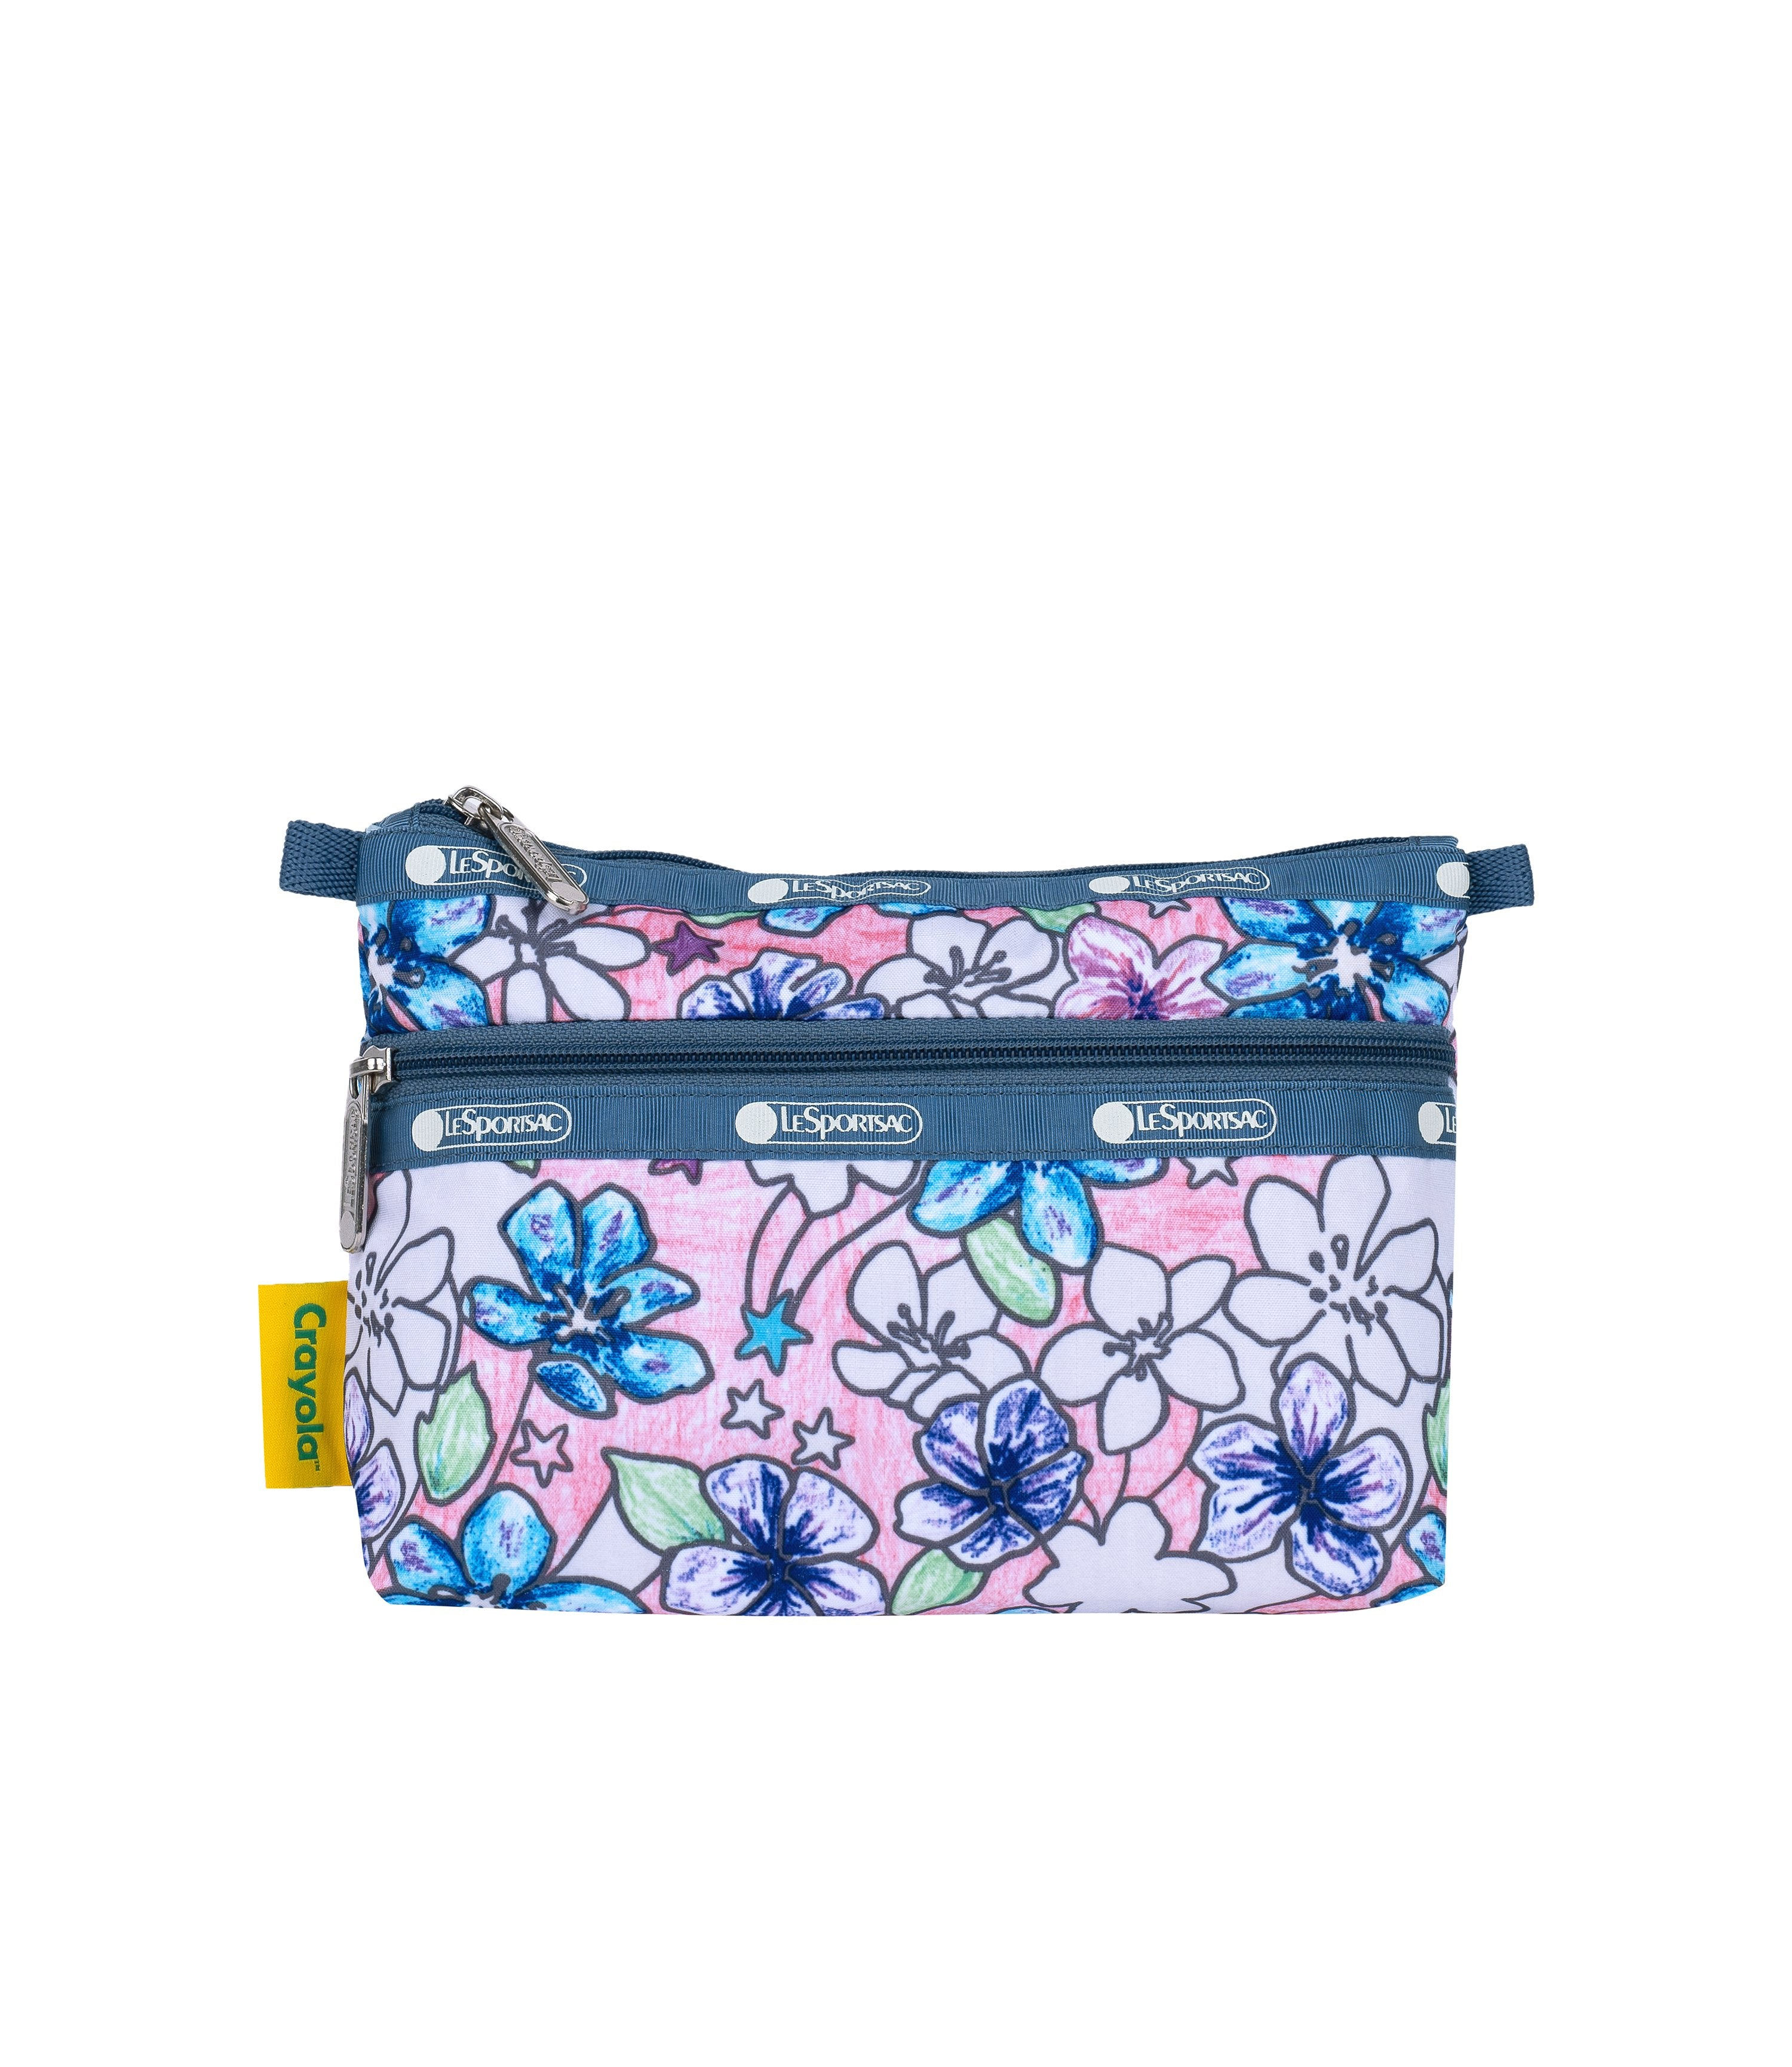 LeSportsac - Accessories - Cosmetic Clutch - Garden Coloring